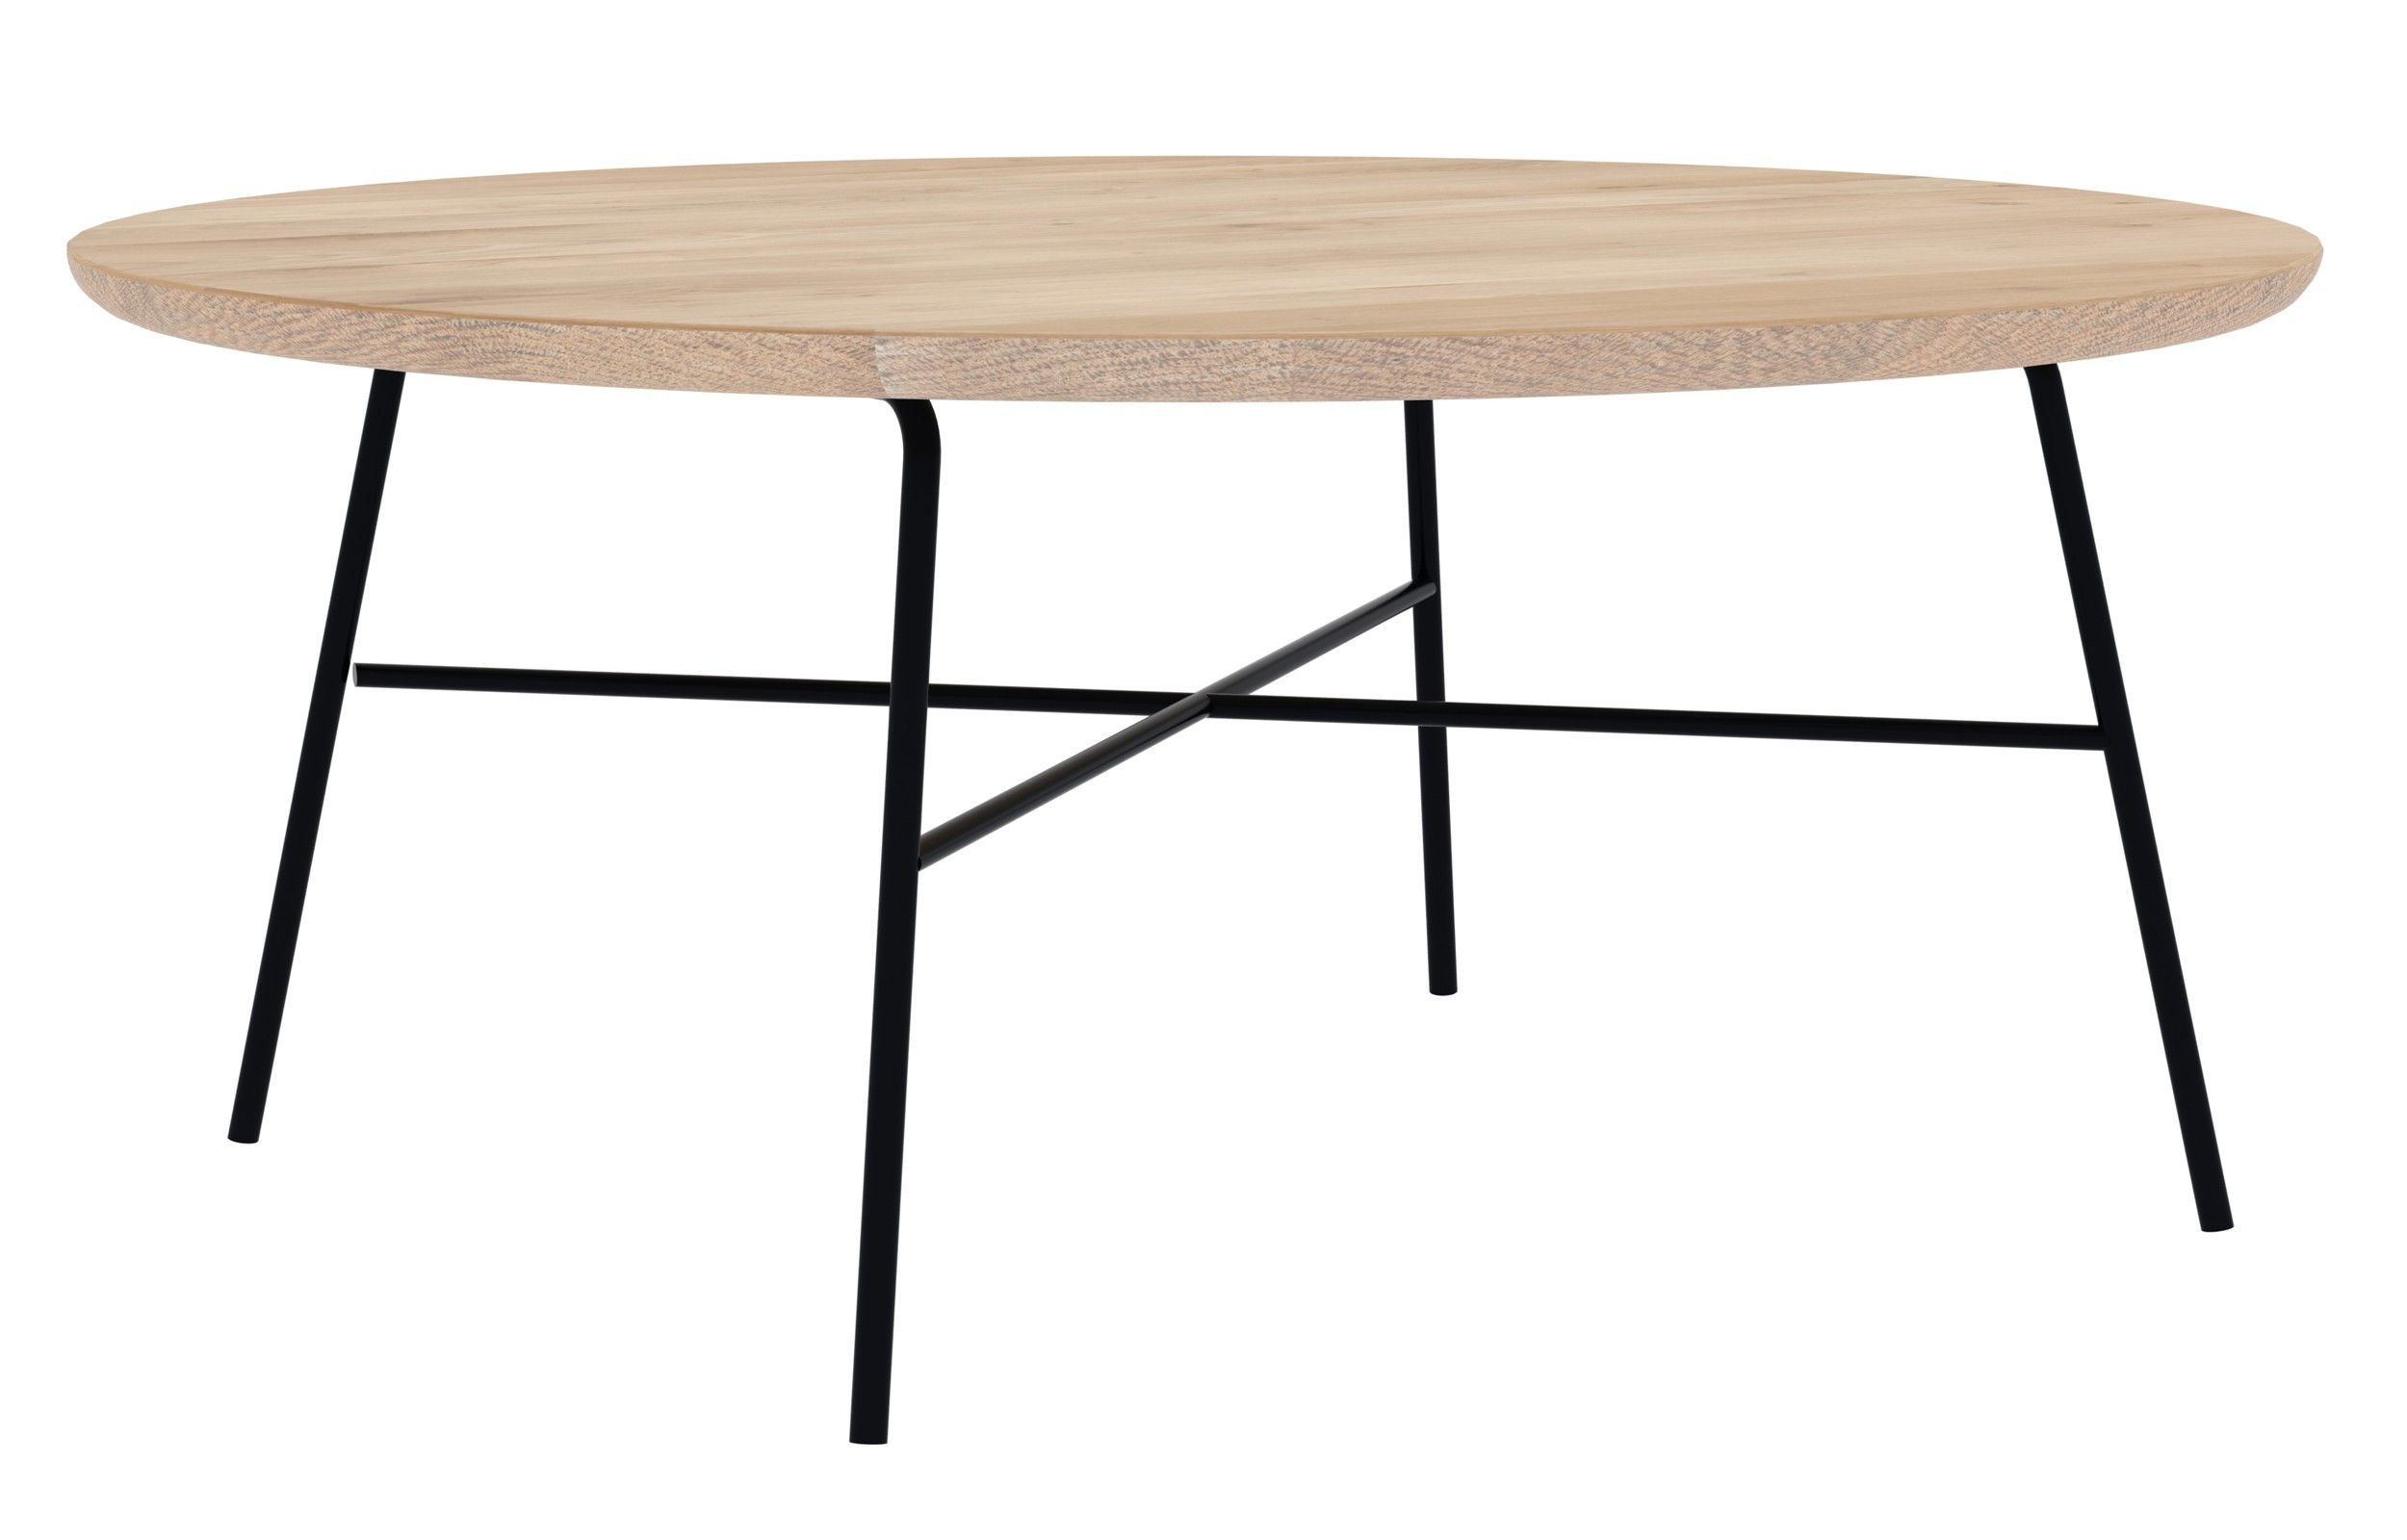 Enjoy Your Cup Of Coffee With The Disc Coffee Table That Is Ideal For Your Living Room This Minimalist In D Coffee Table Sleek Coffee Table Round Coffee Table [ 1600 x 2500 Pixel ]